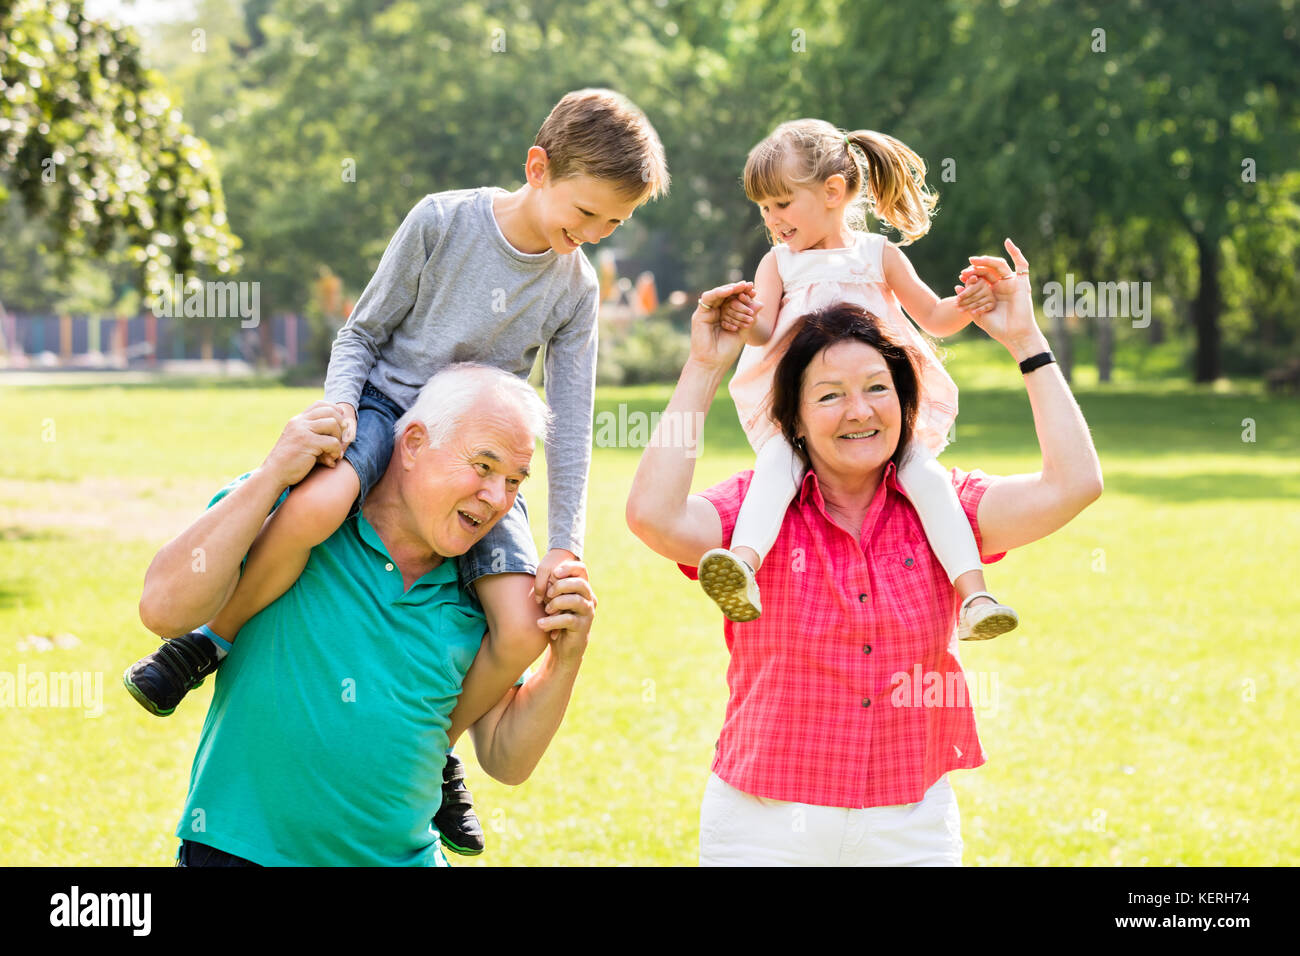 Happy Grandparents Giving Fun Piggyback Ride To Their Grandchildren In Park - Stock Image